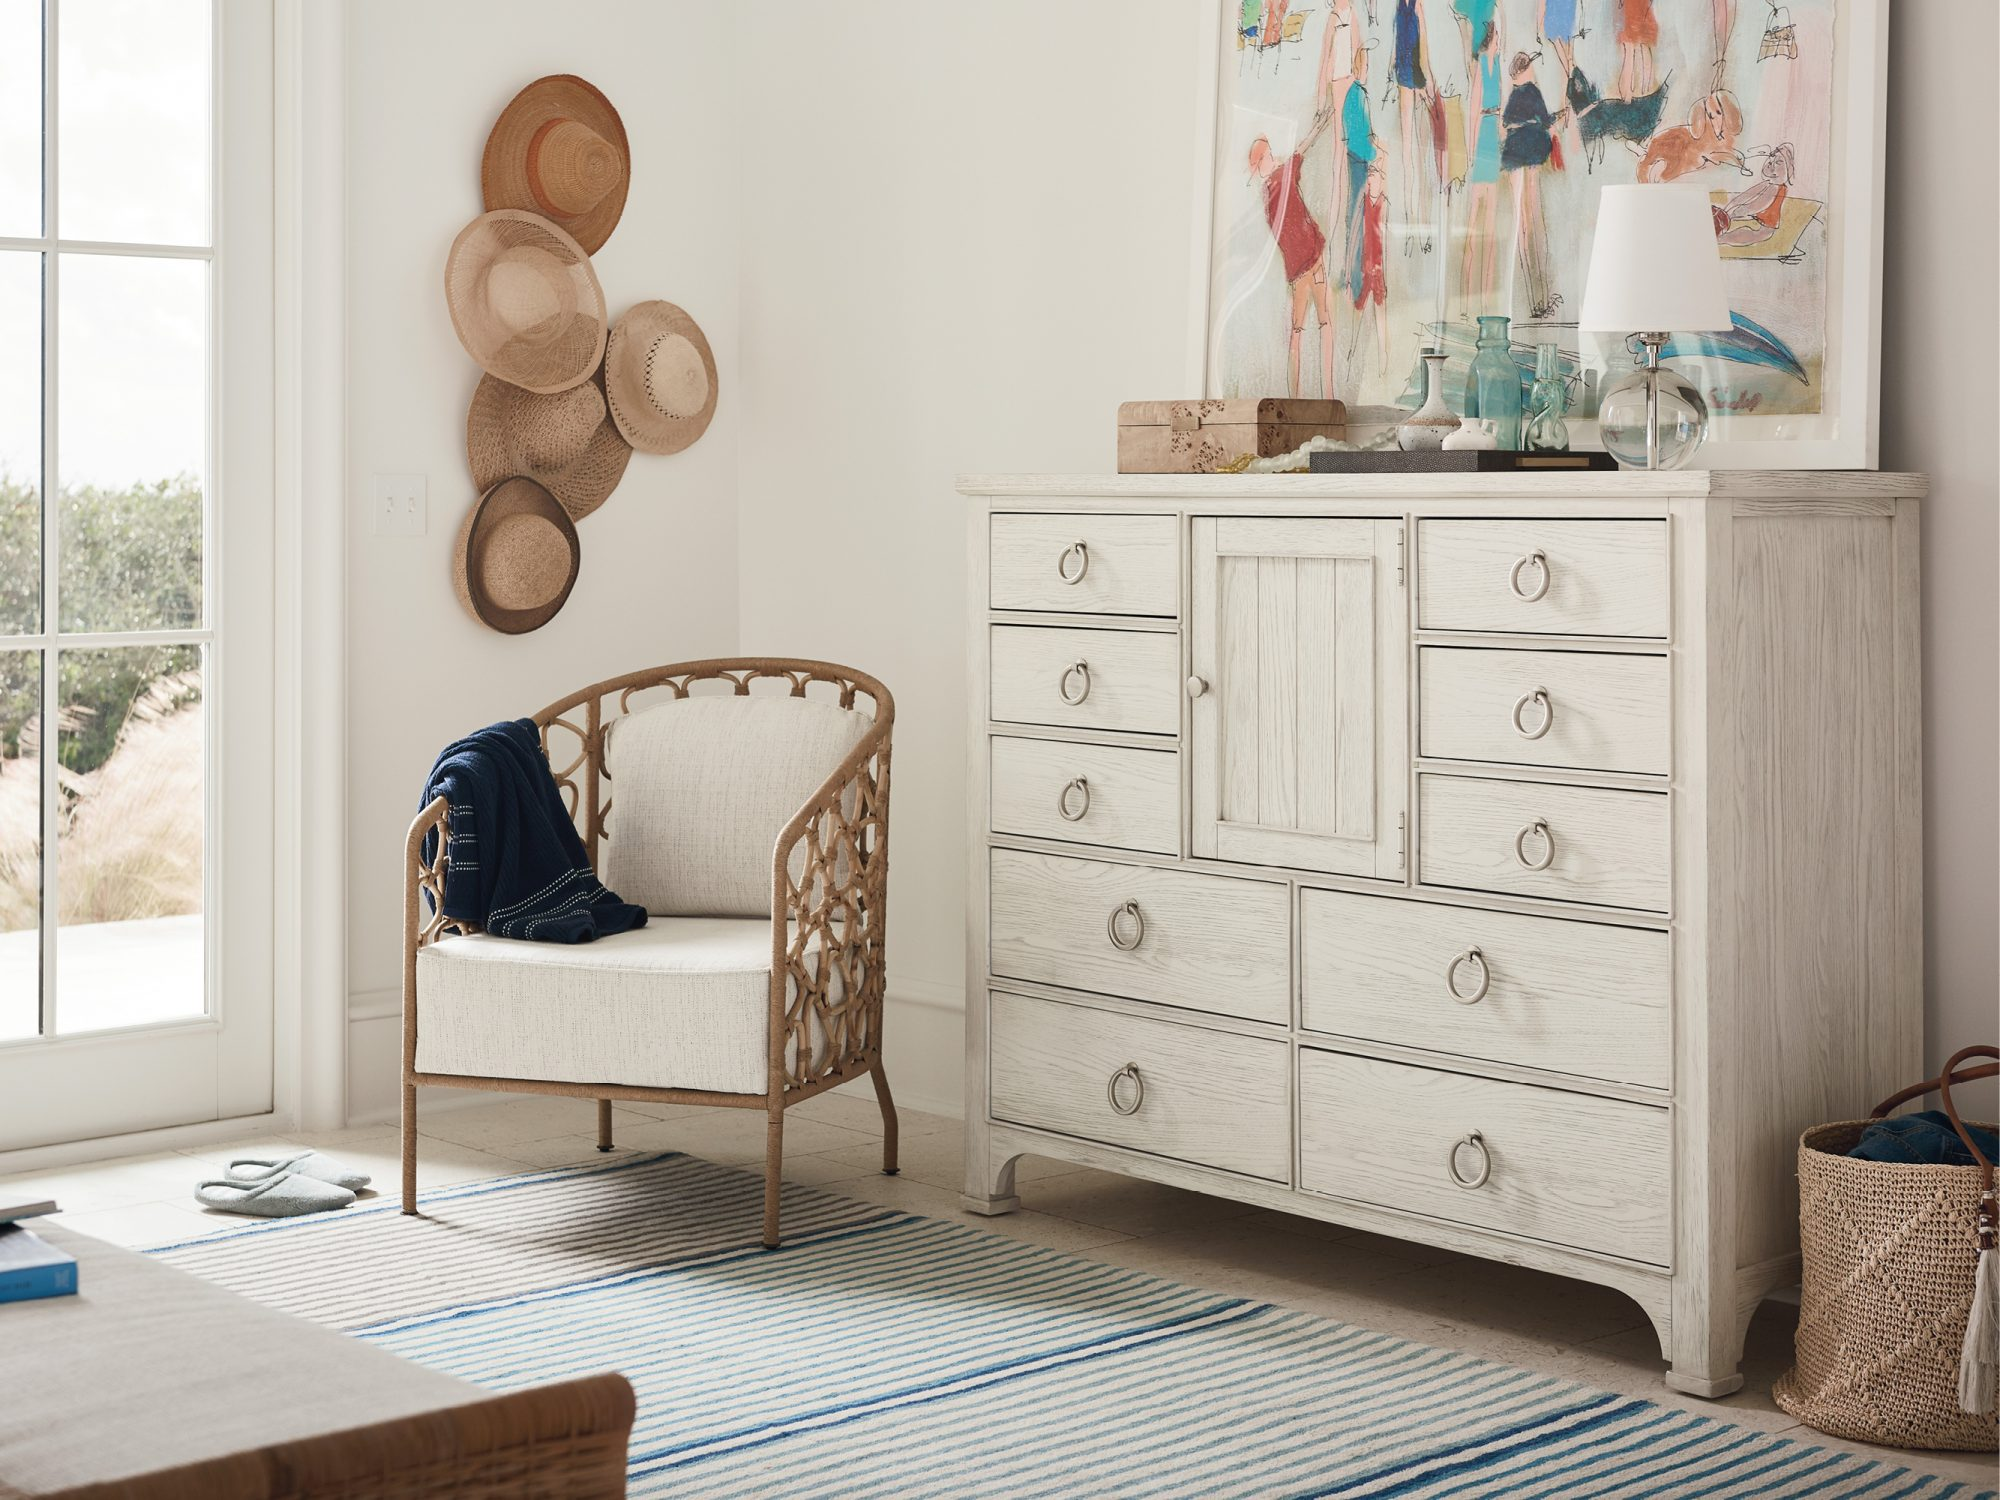 Pebble Accent Chair and Escape Dressing Chest from the Coastal Living Furniture Collection